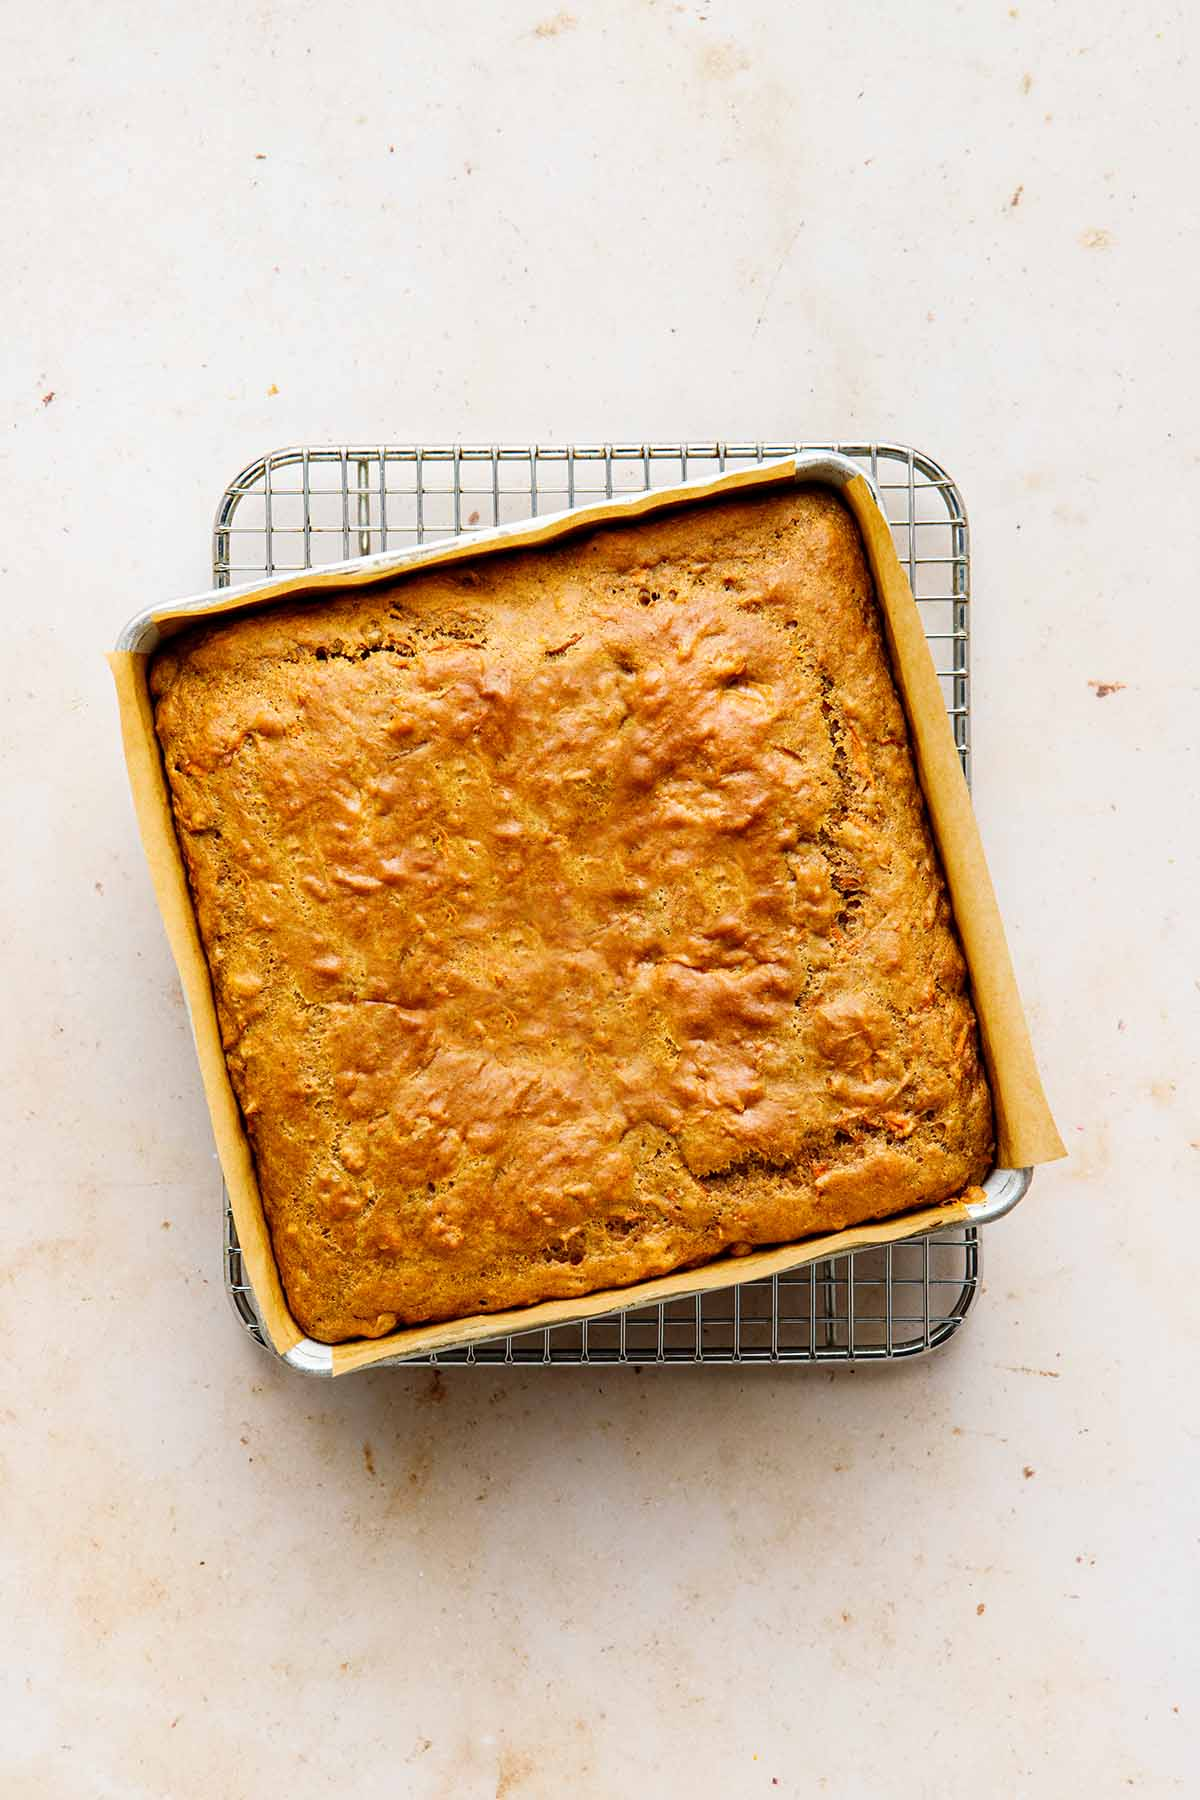 Baked cake on a cooling rack.